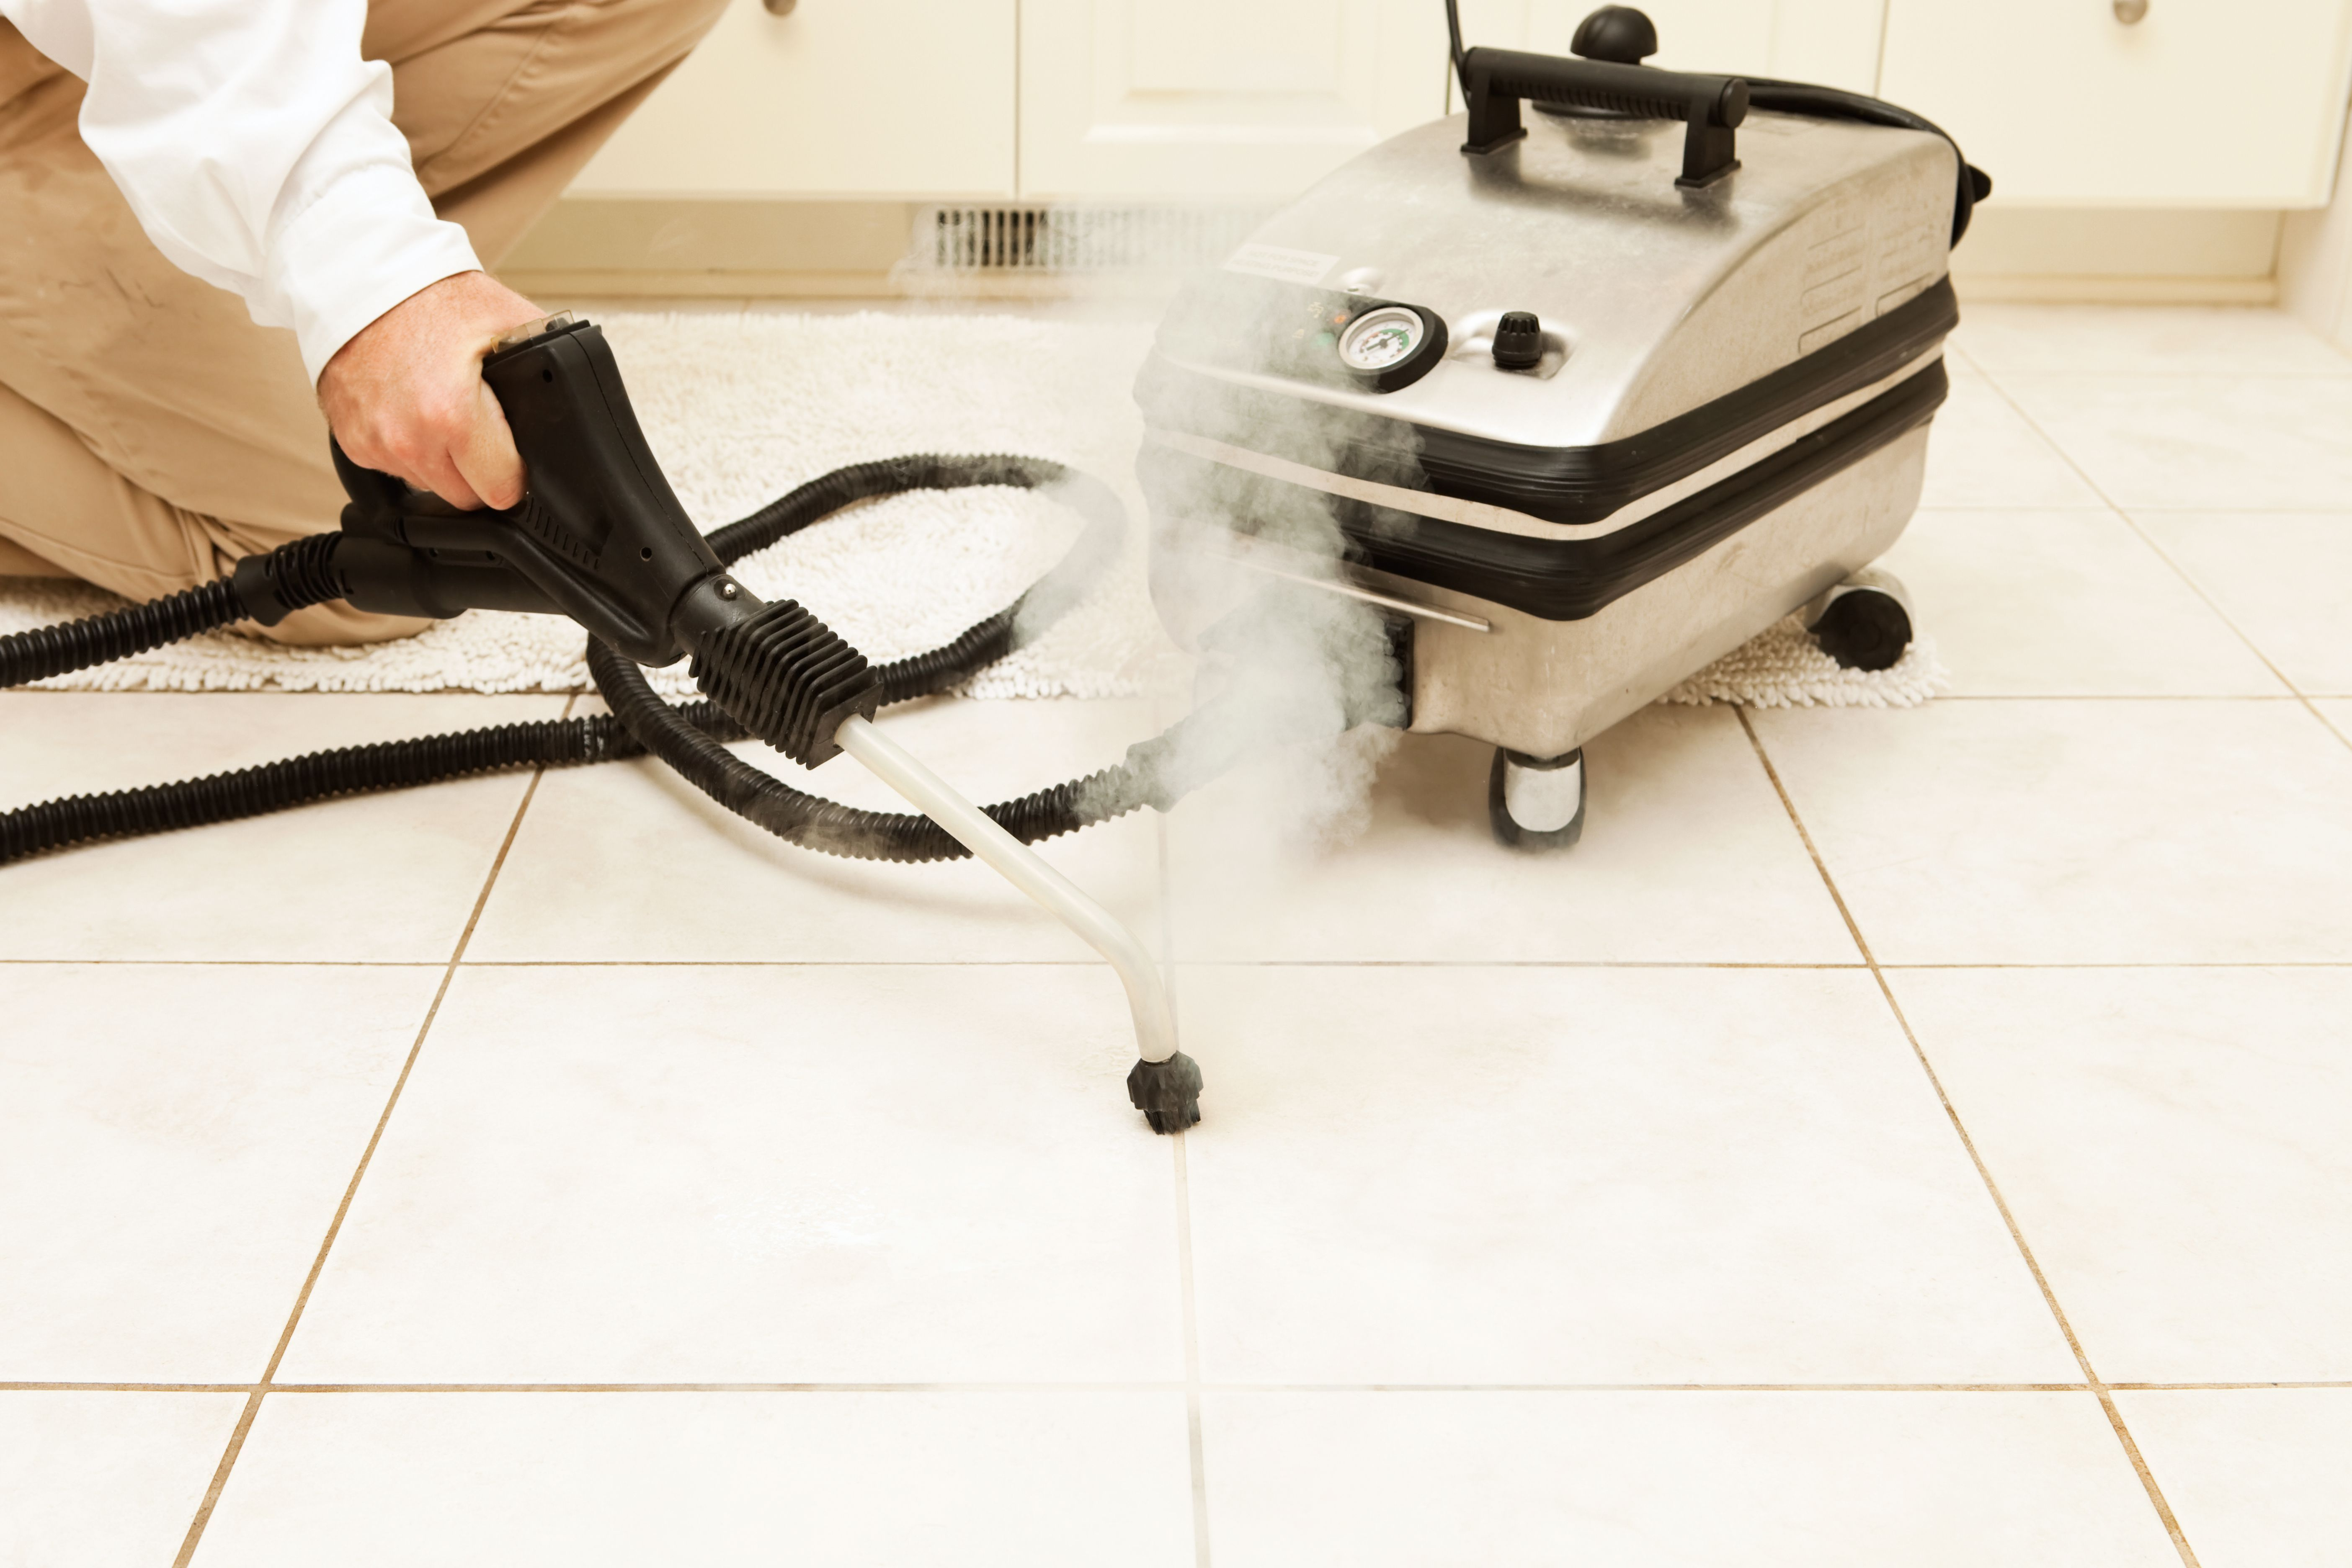 How To Renew Tile Grout The Easy Way With A Steam Cleaner In 2020 Grout Cleaner Clean Tile Grout Grout Cleaning Machine